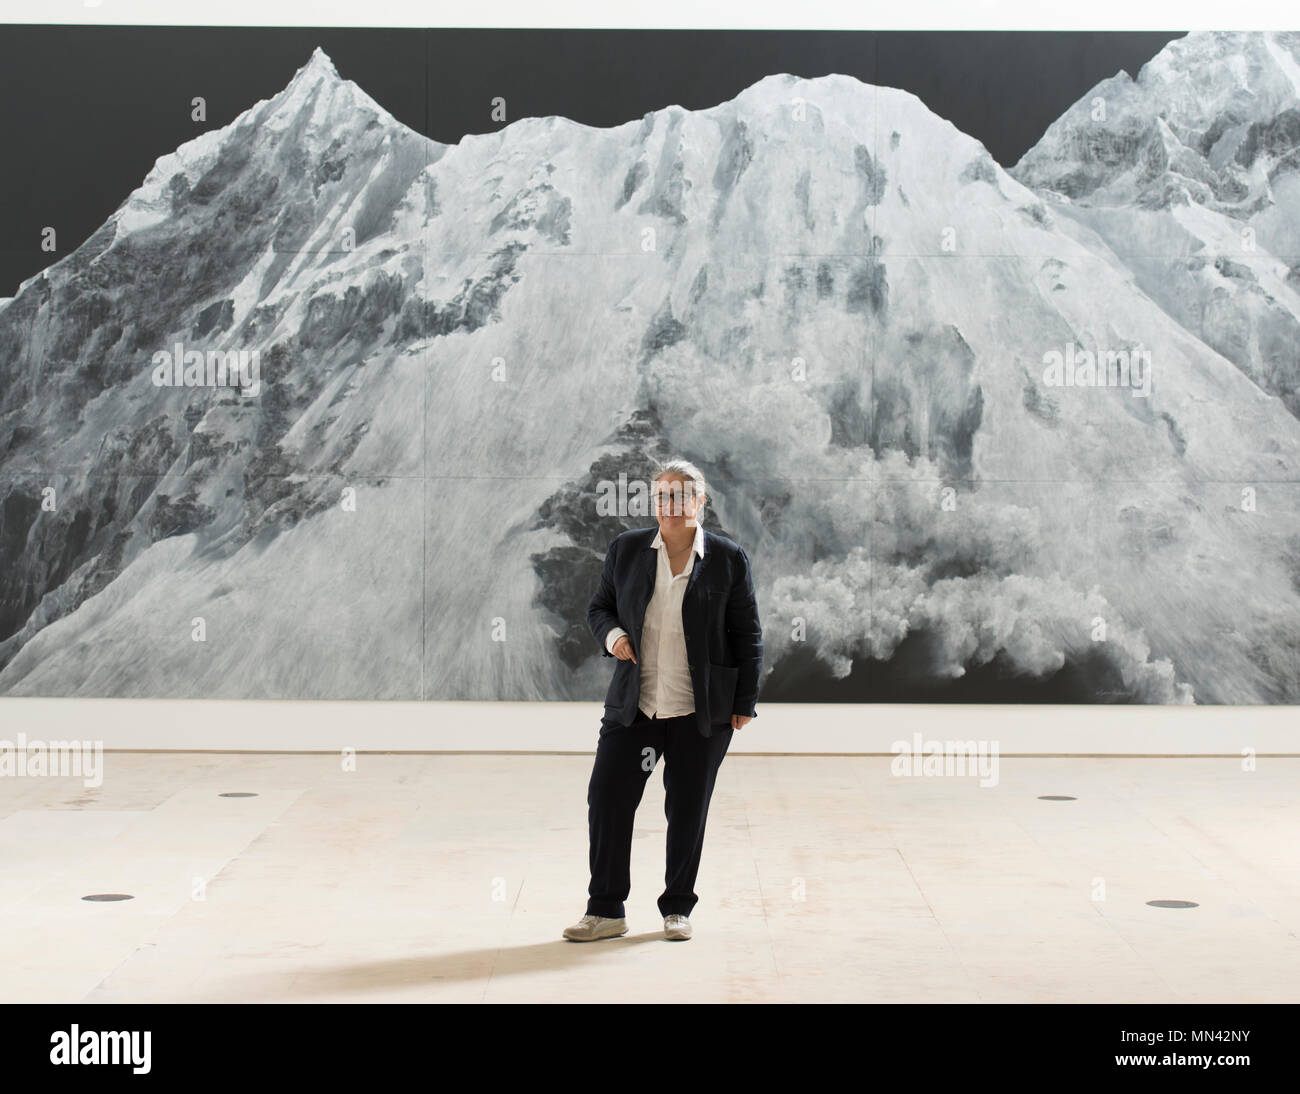 Royal Academy of Arts, London, UK. 14 May, 2018. Royal Academician Tacita Dean, whose exhibition Landscape inaugurates the new galleries, stands in front of her large chalk on blackboard work, The Montafon Letter, 2017. Glenstone Museum, Potomac, Maryland. Credit: Malcolm Park/Alamy Live News. Stock Photo